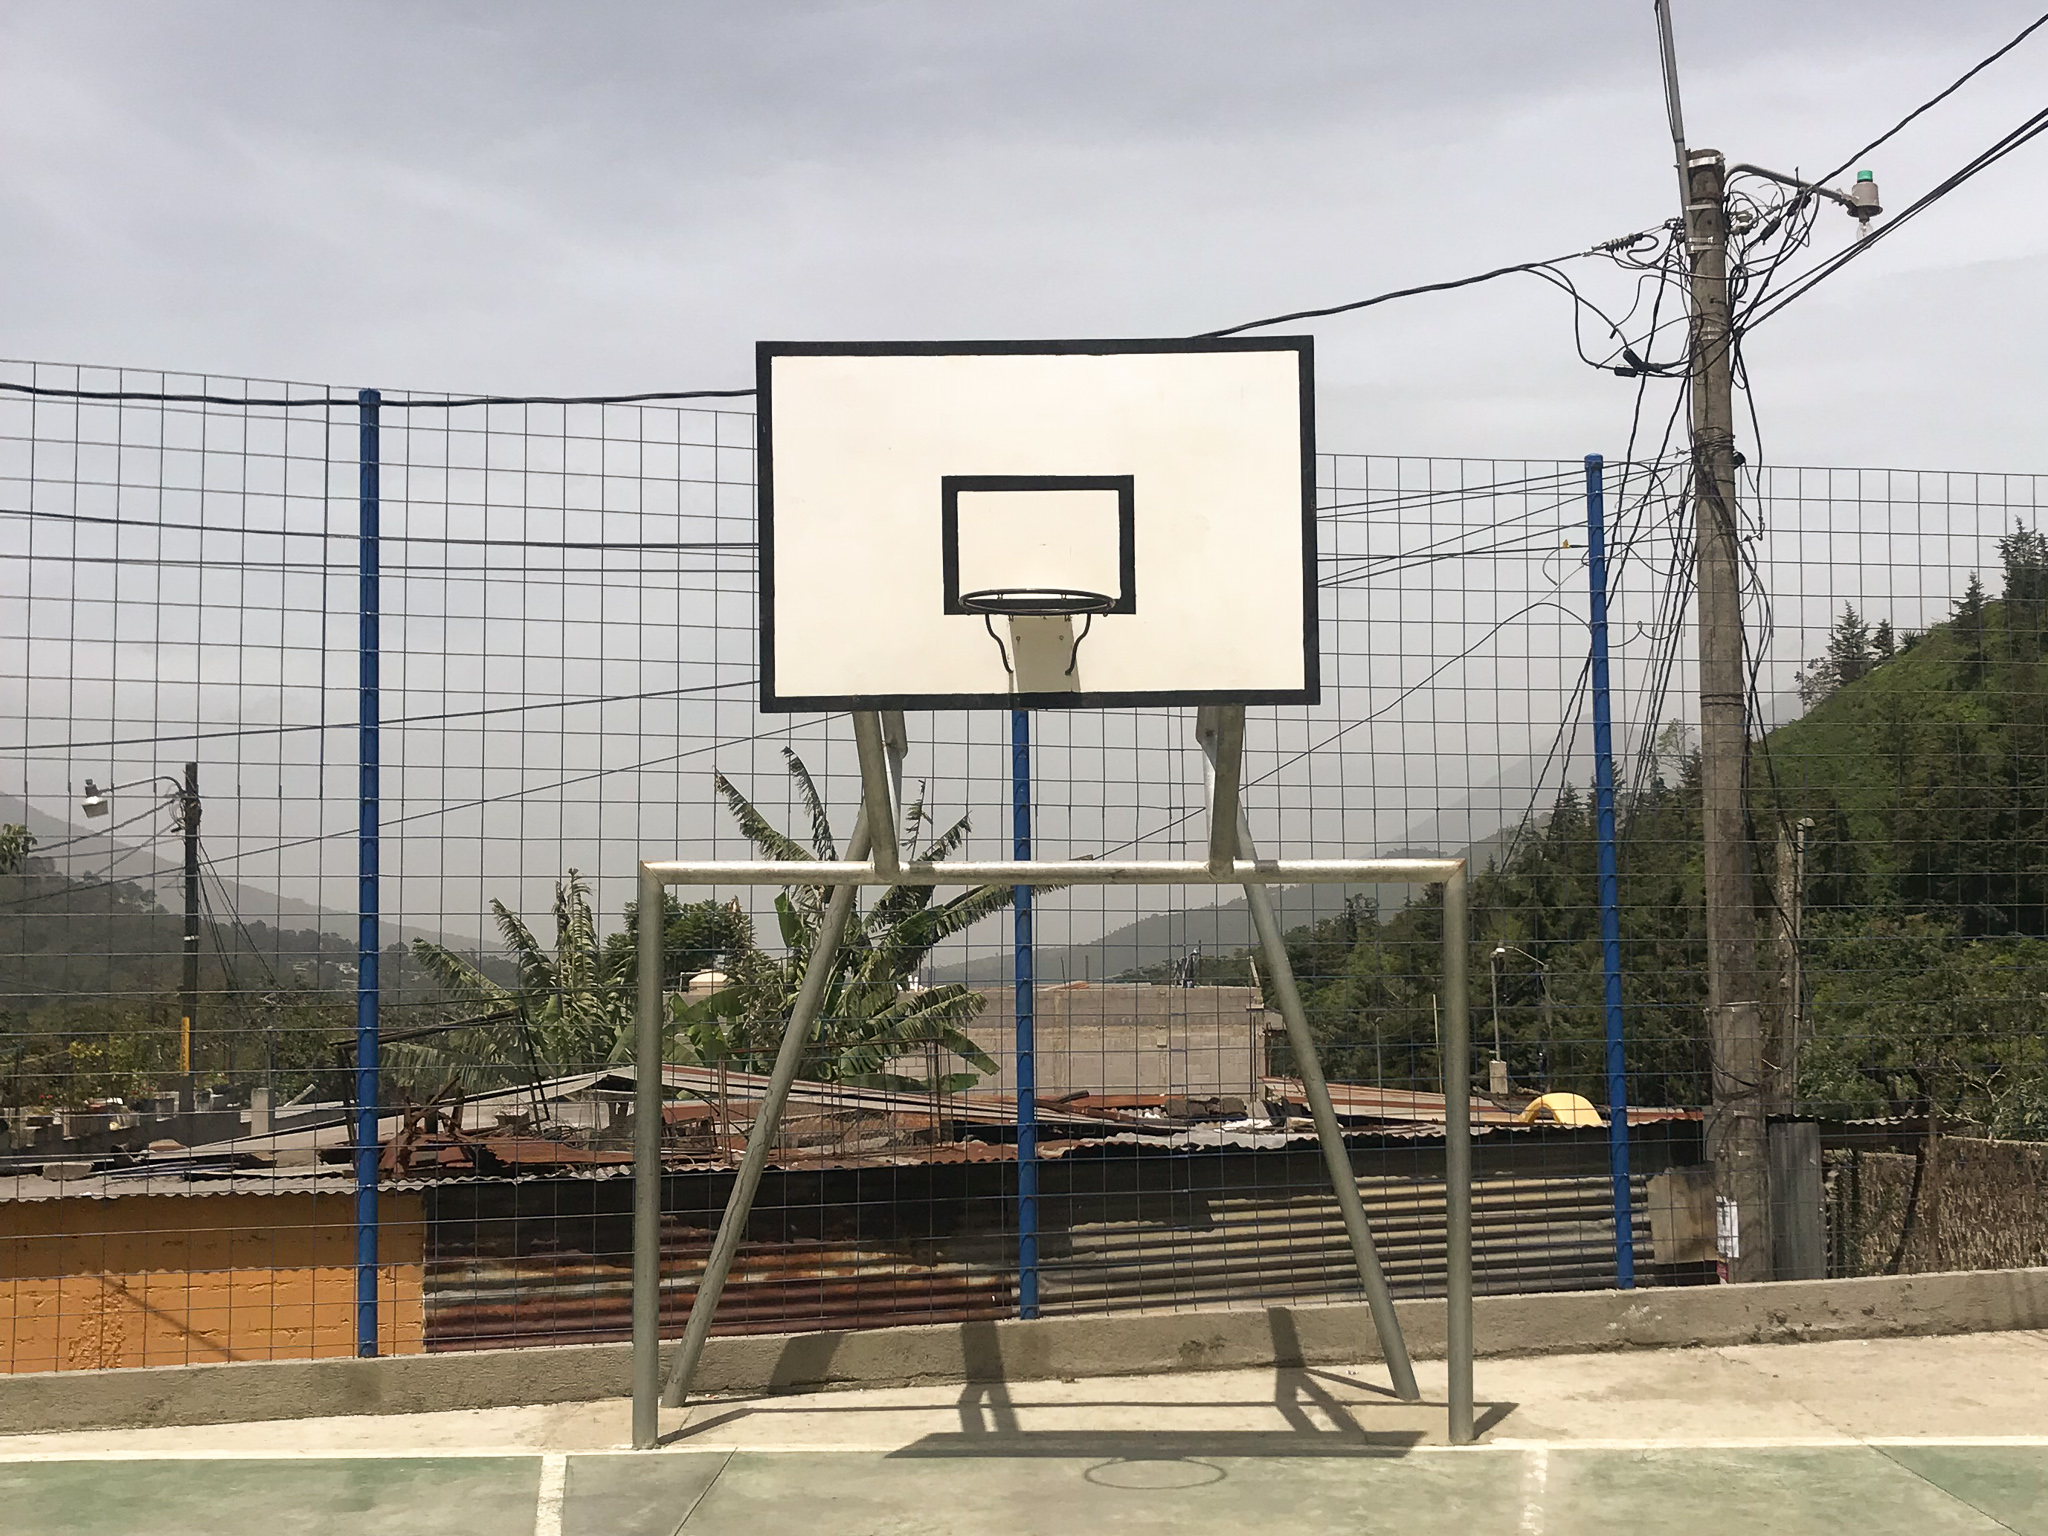 Guatemala basketball courts pictures